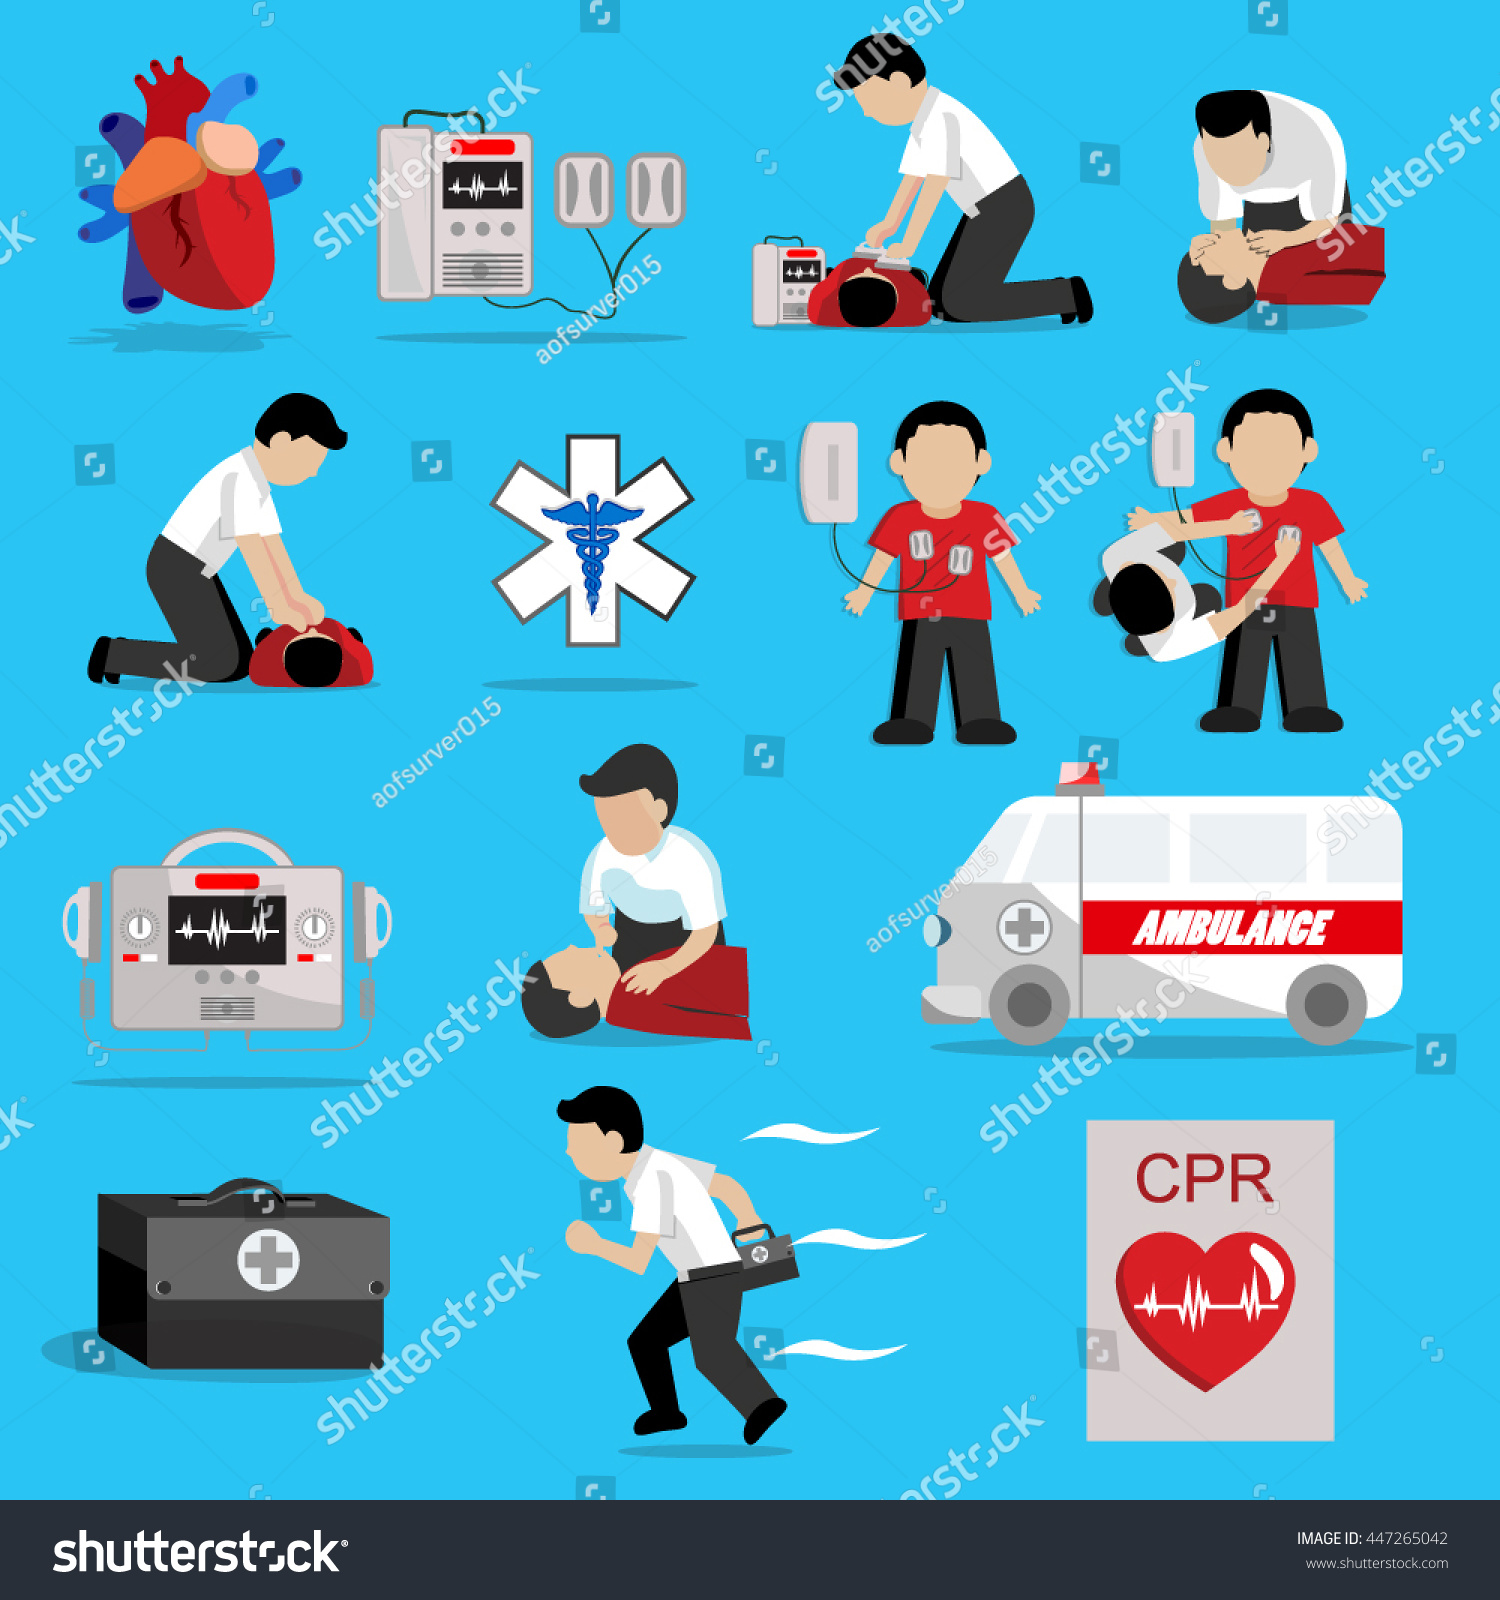 What do you do when a patient wakes up during CPR?